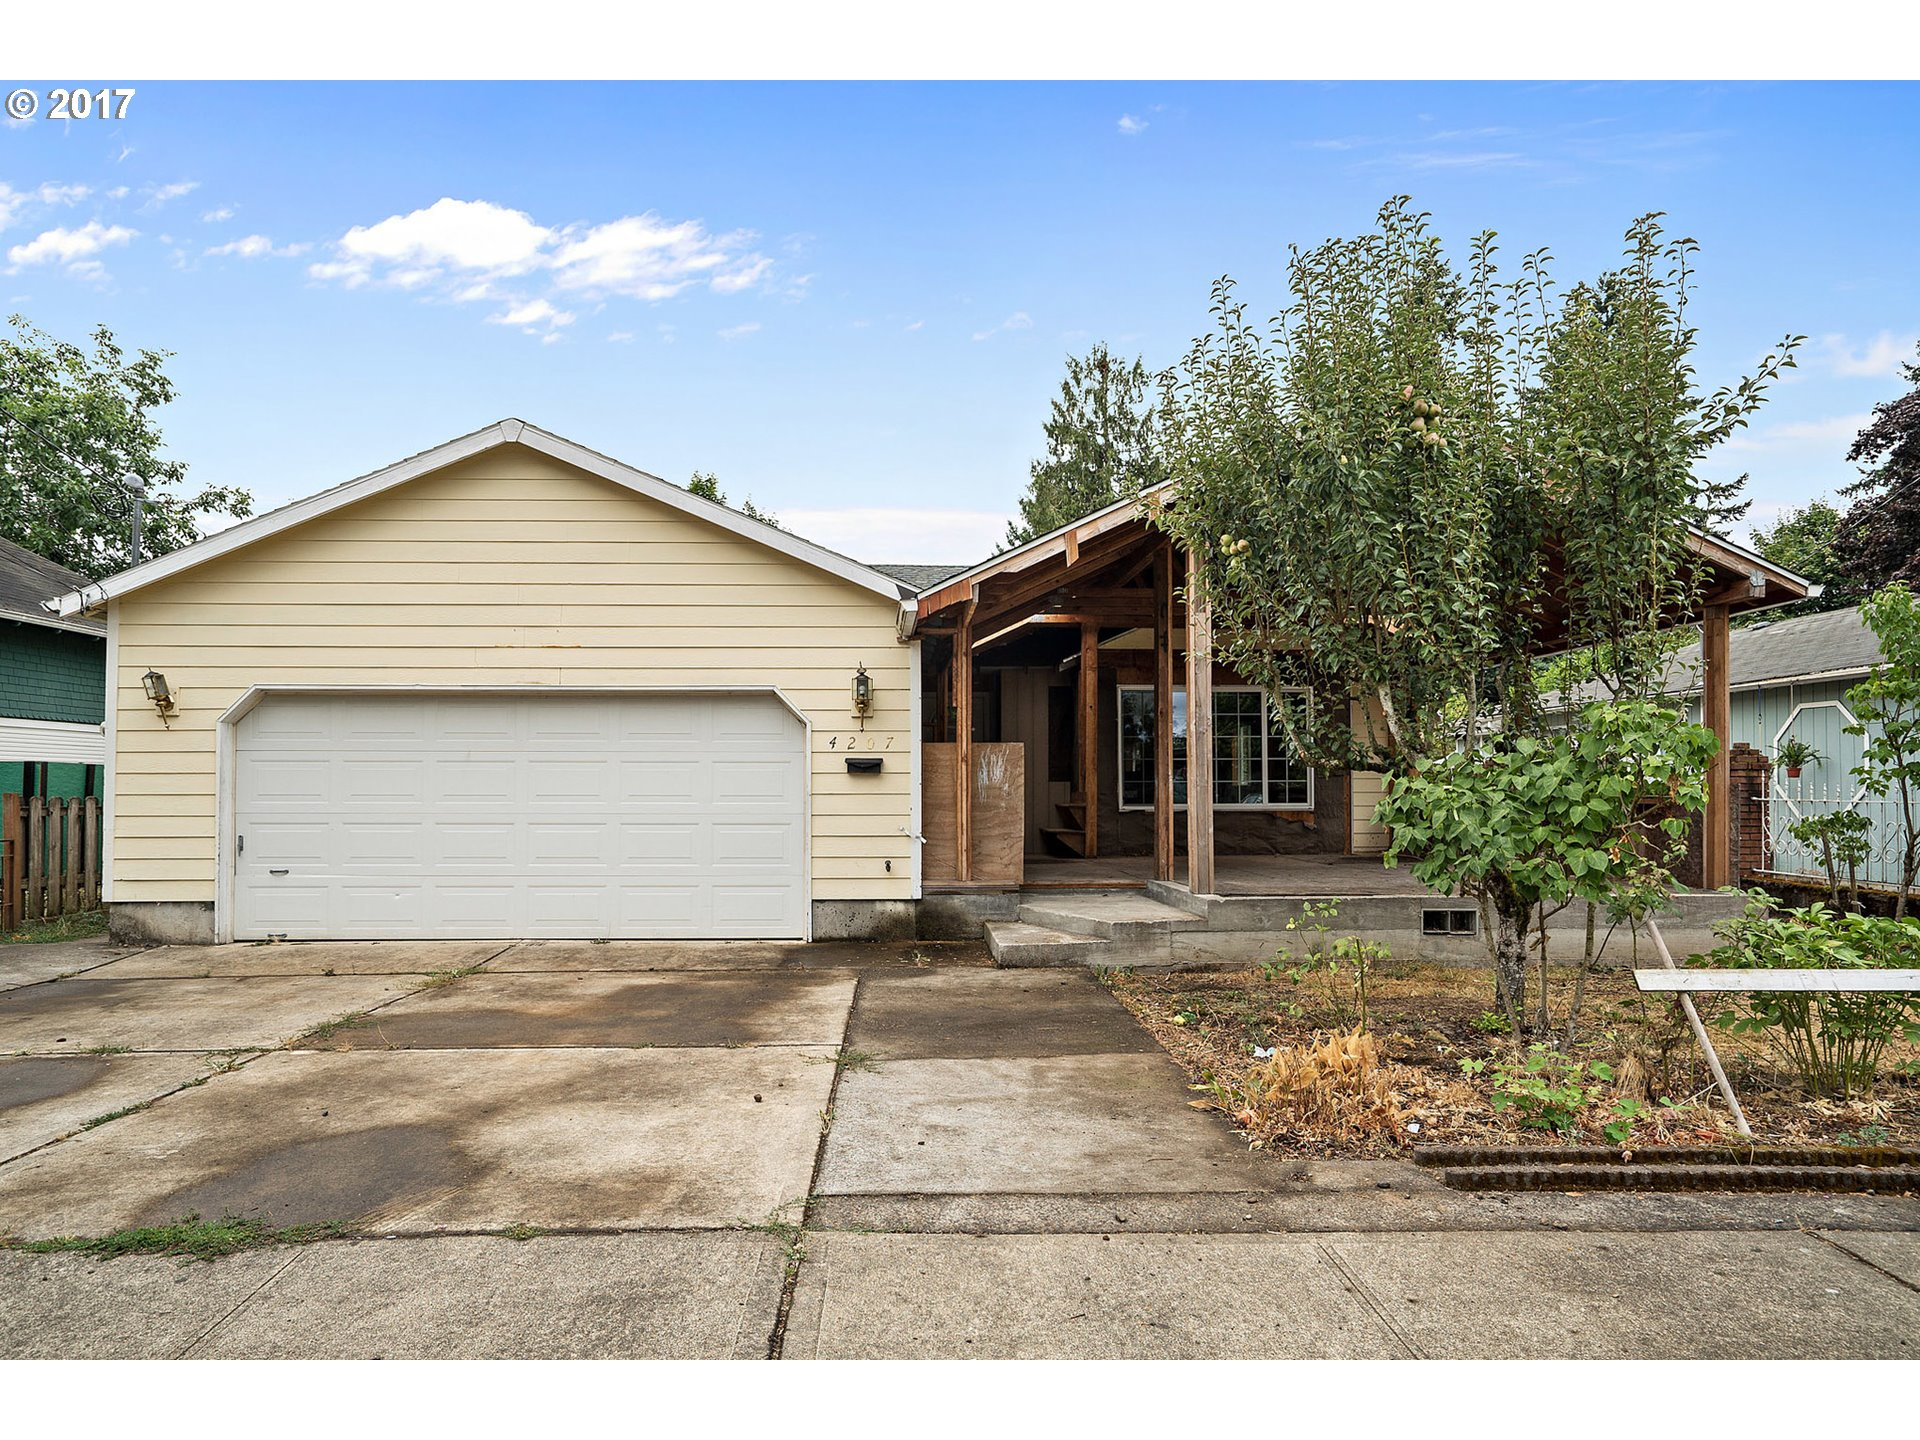 1448 sq. ft 3 bedrooms 2 bathrooms  House ,Portland, OR